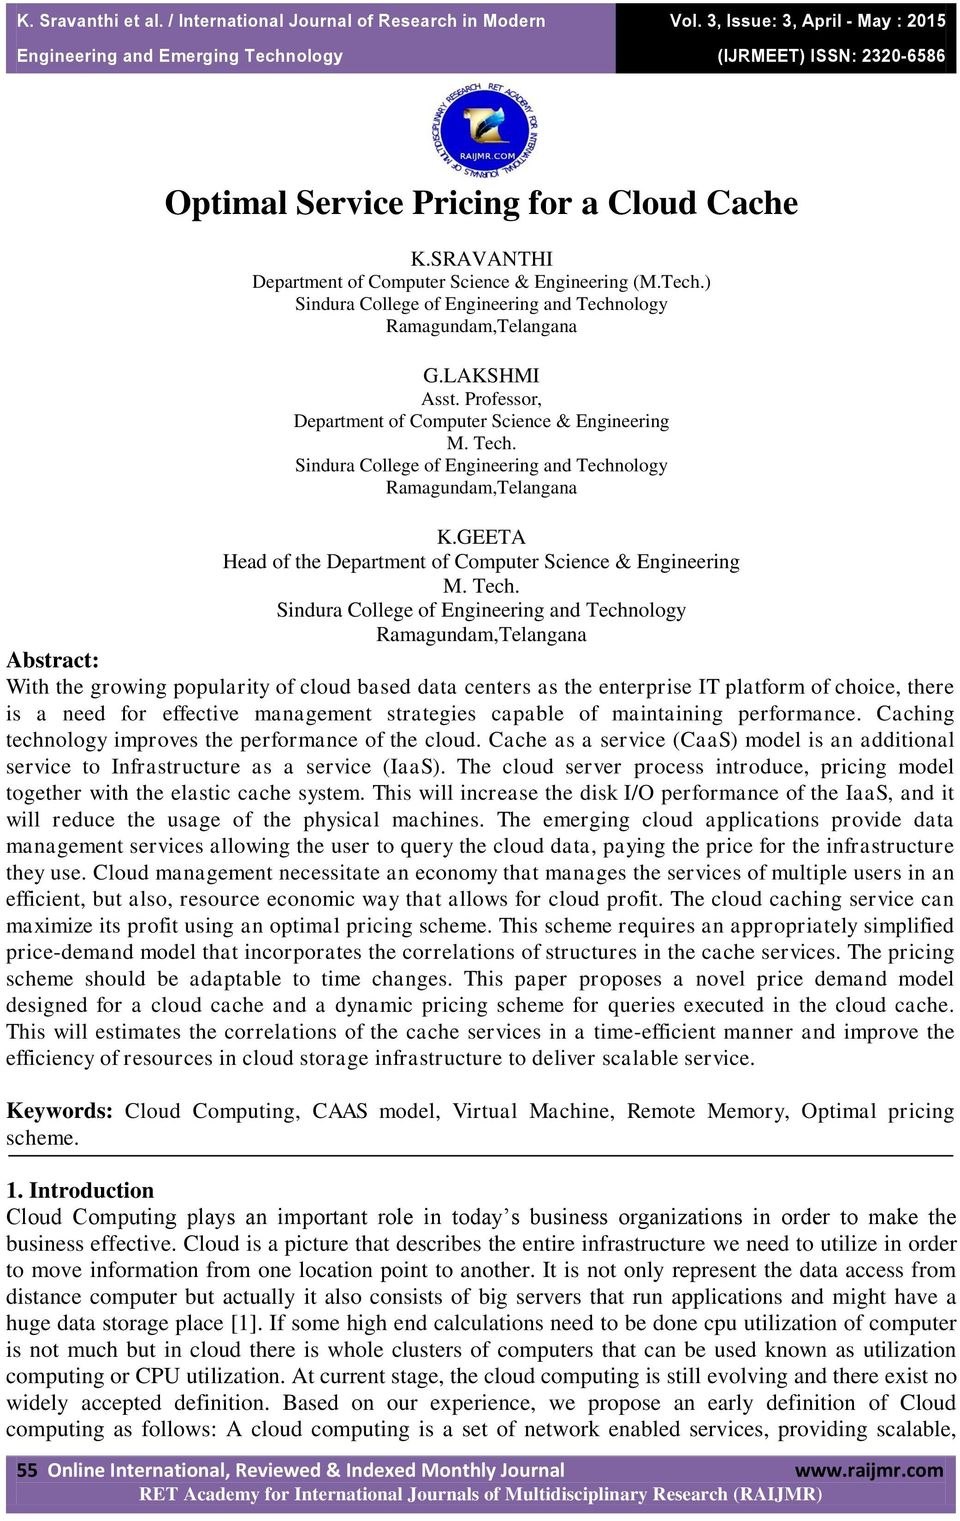 Tech. Sindura College of Engineering and Technology Ramagundam,Telangana Abstract: With the growing popularity of cloud based data centers as the enterprise IT platform of choice, there is a need for